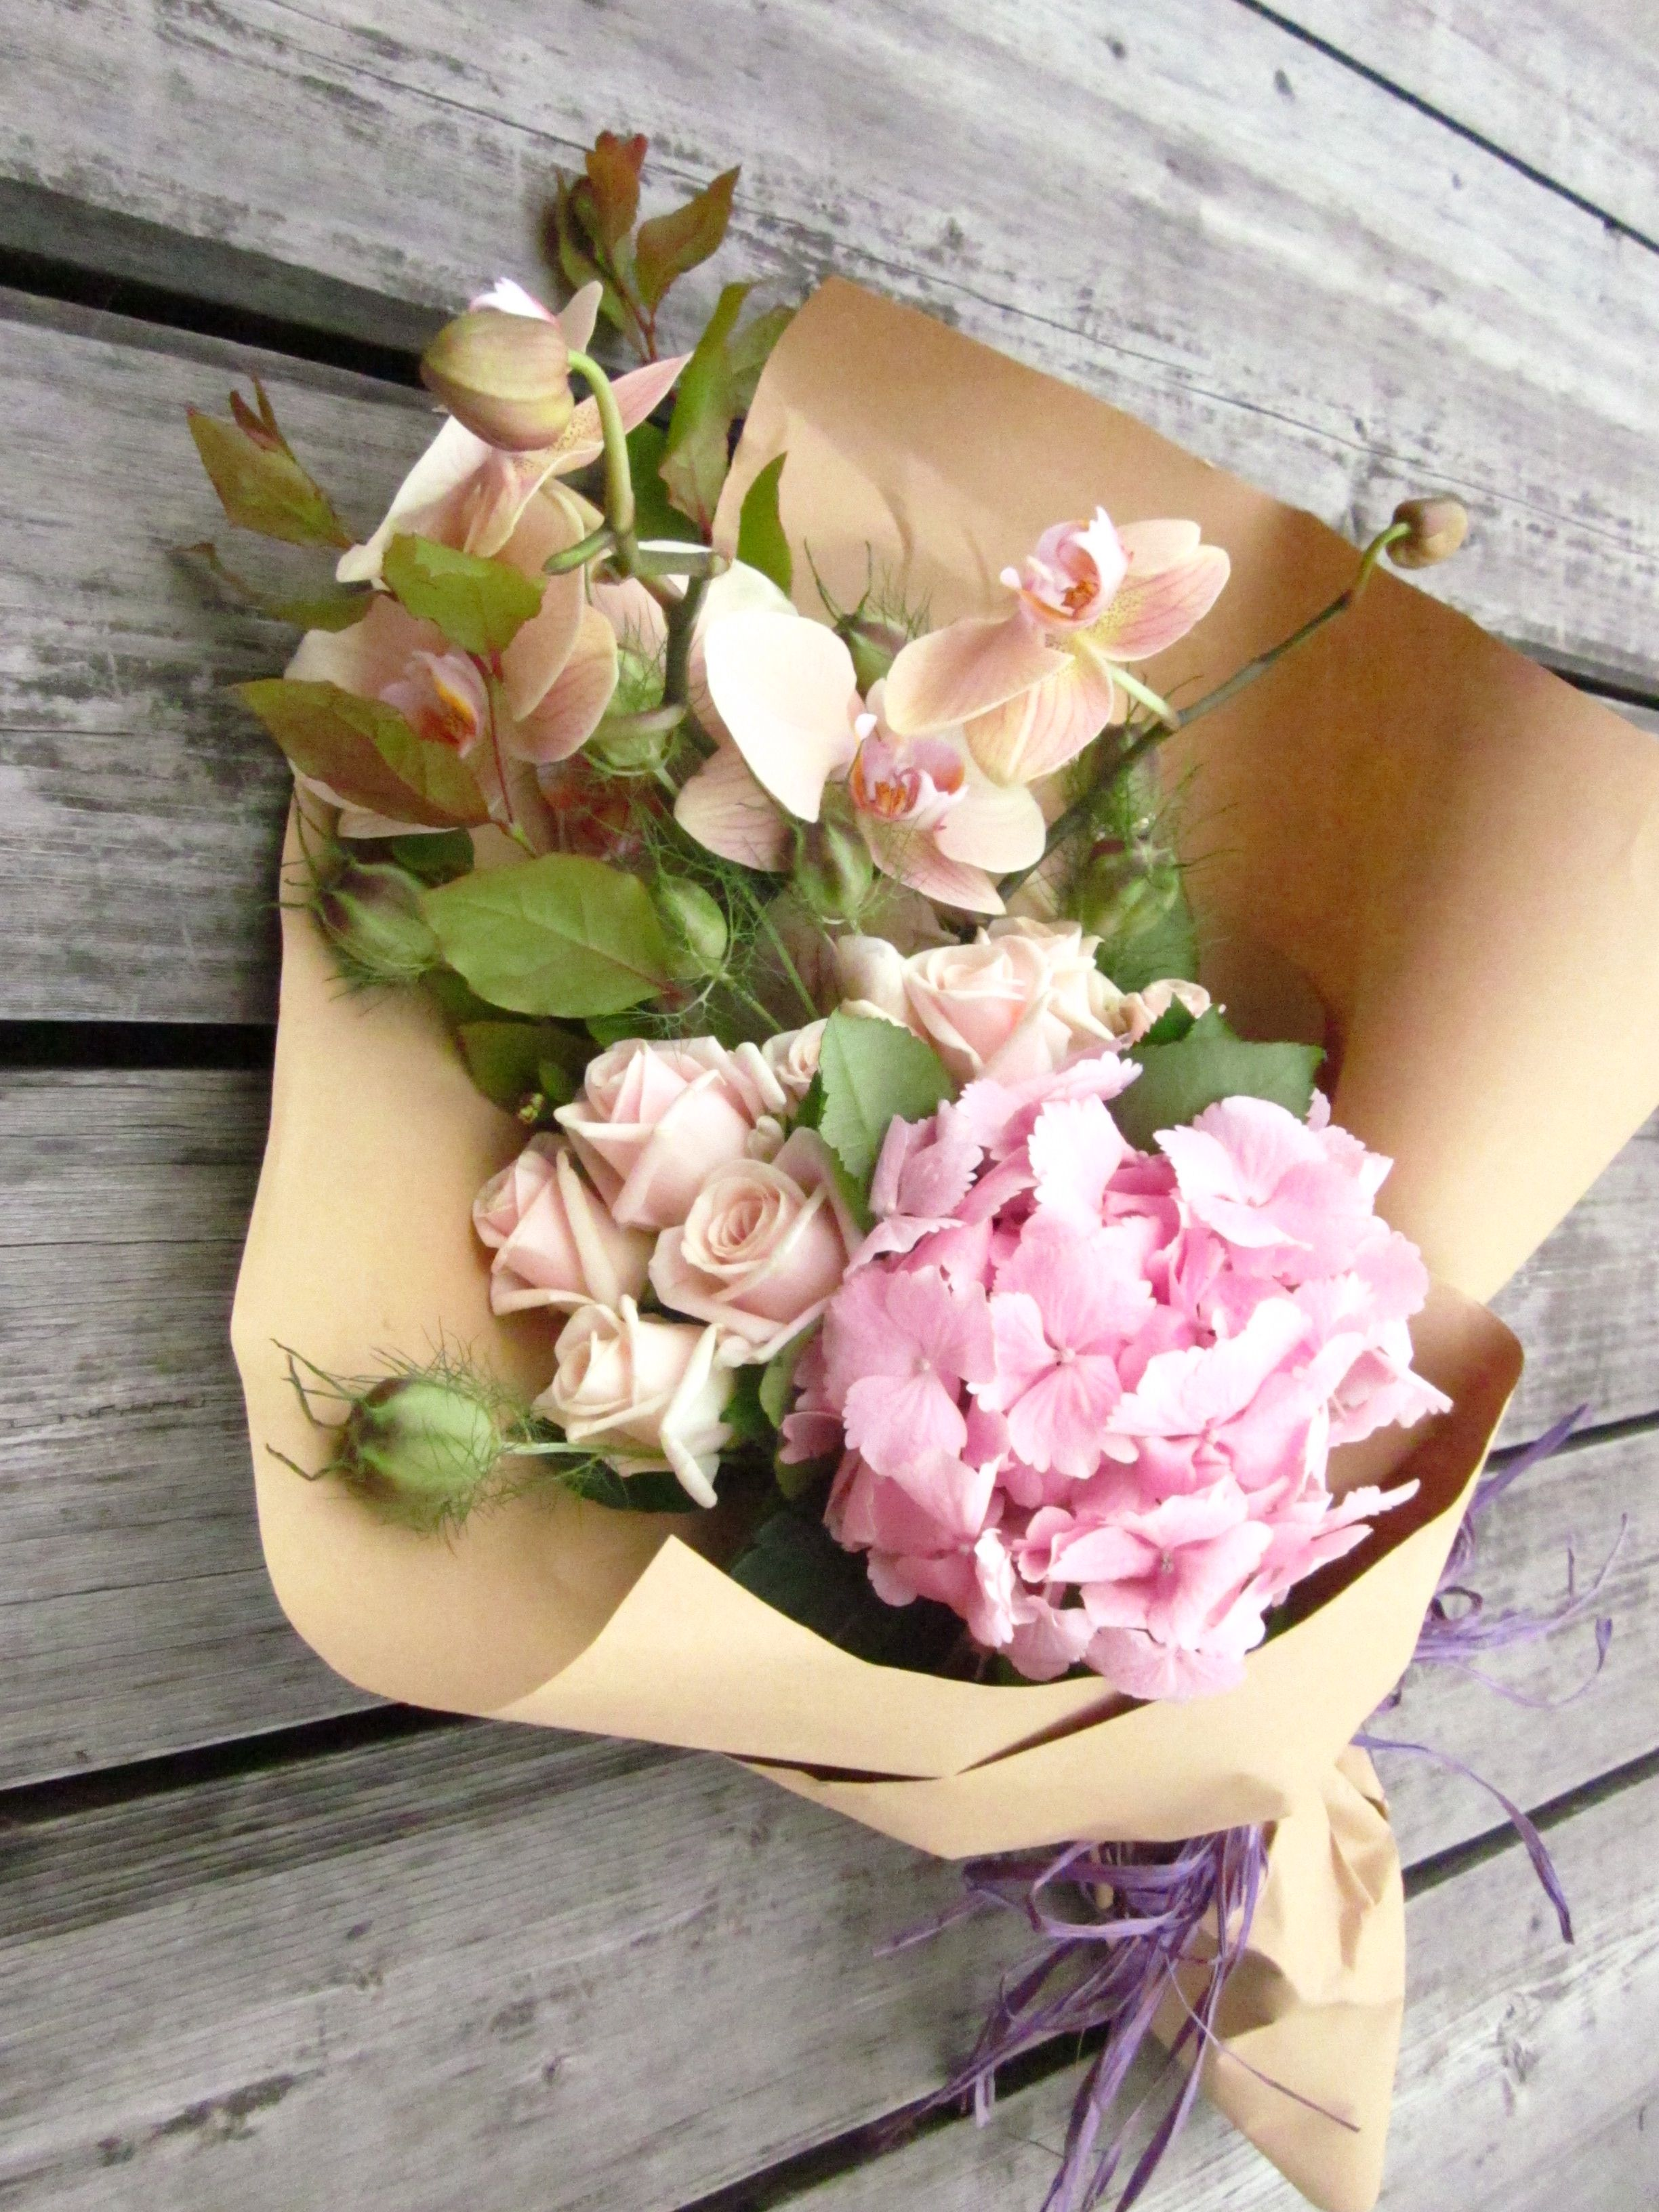 Flowers Wrapped In Brown Paper Simply Awesome Pinterest